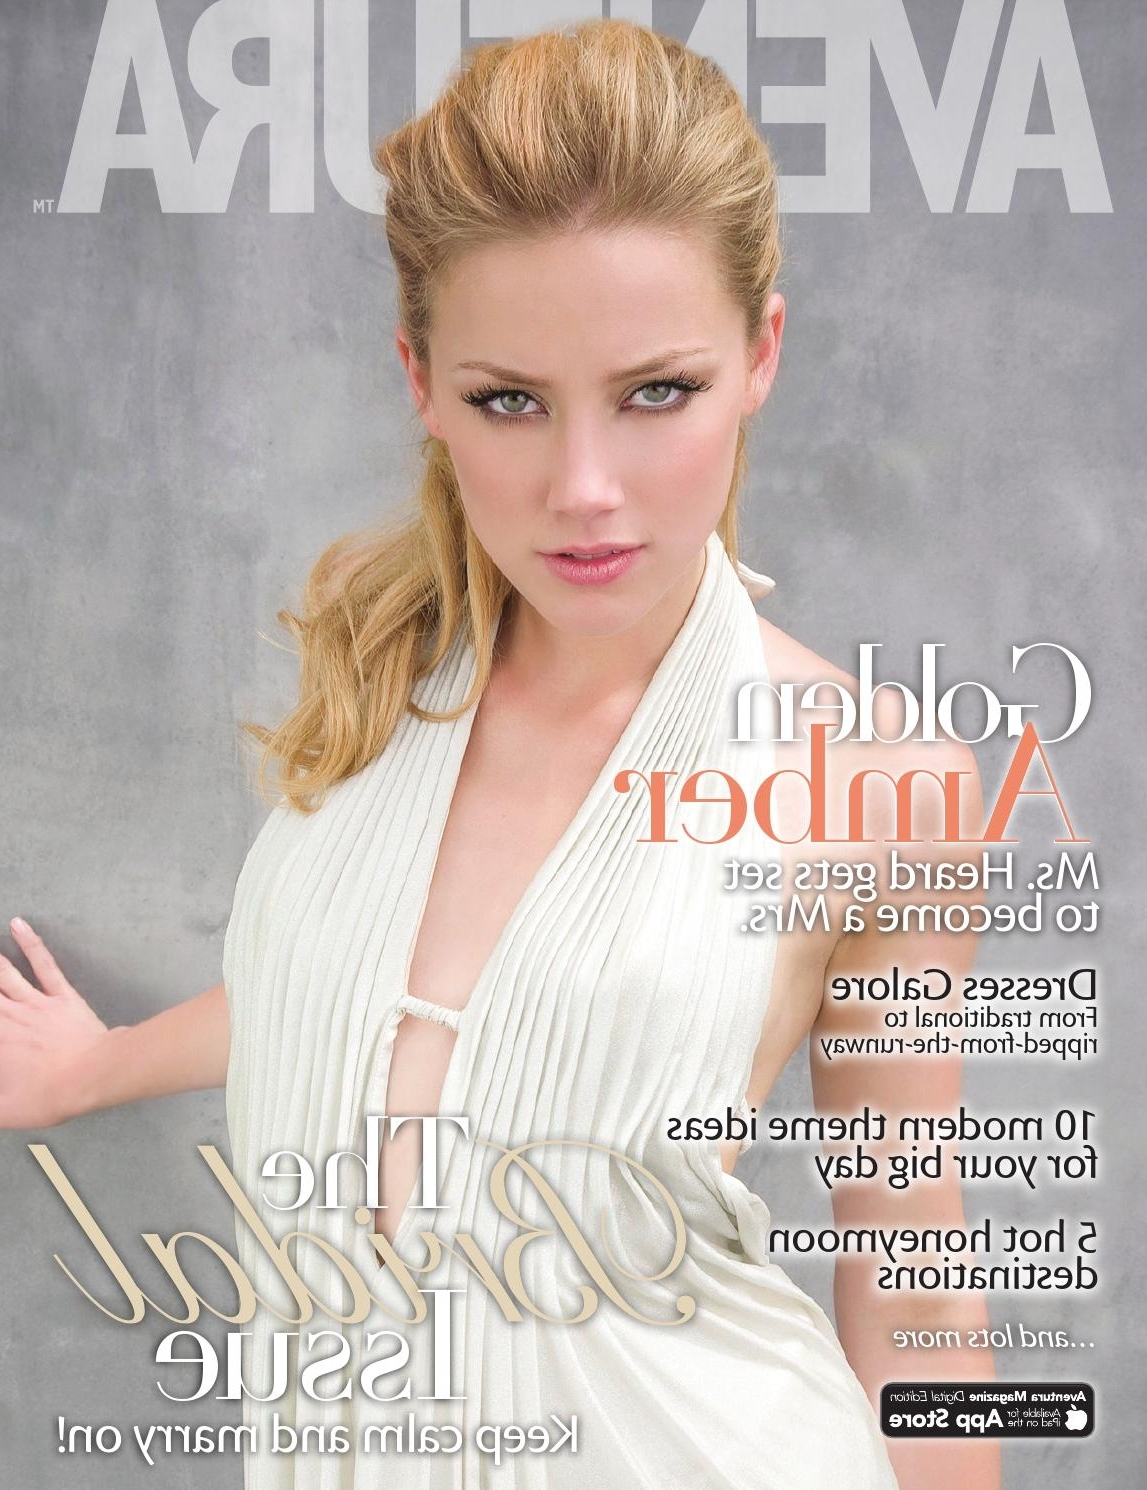 Fashionable Porcelain Princess Karate Chop Blonde Hairstyles Intended For Aventura Magazine June 2014Aventura Magazine – Issuu (View 5 of 20)